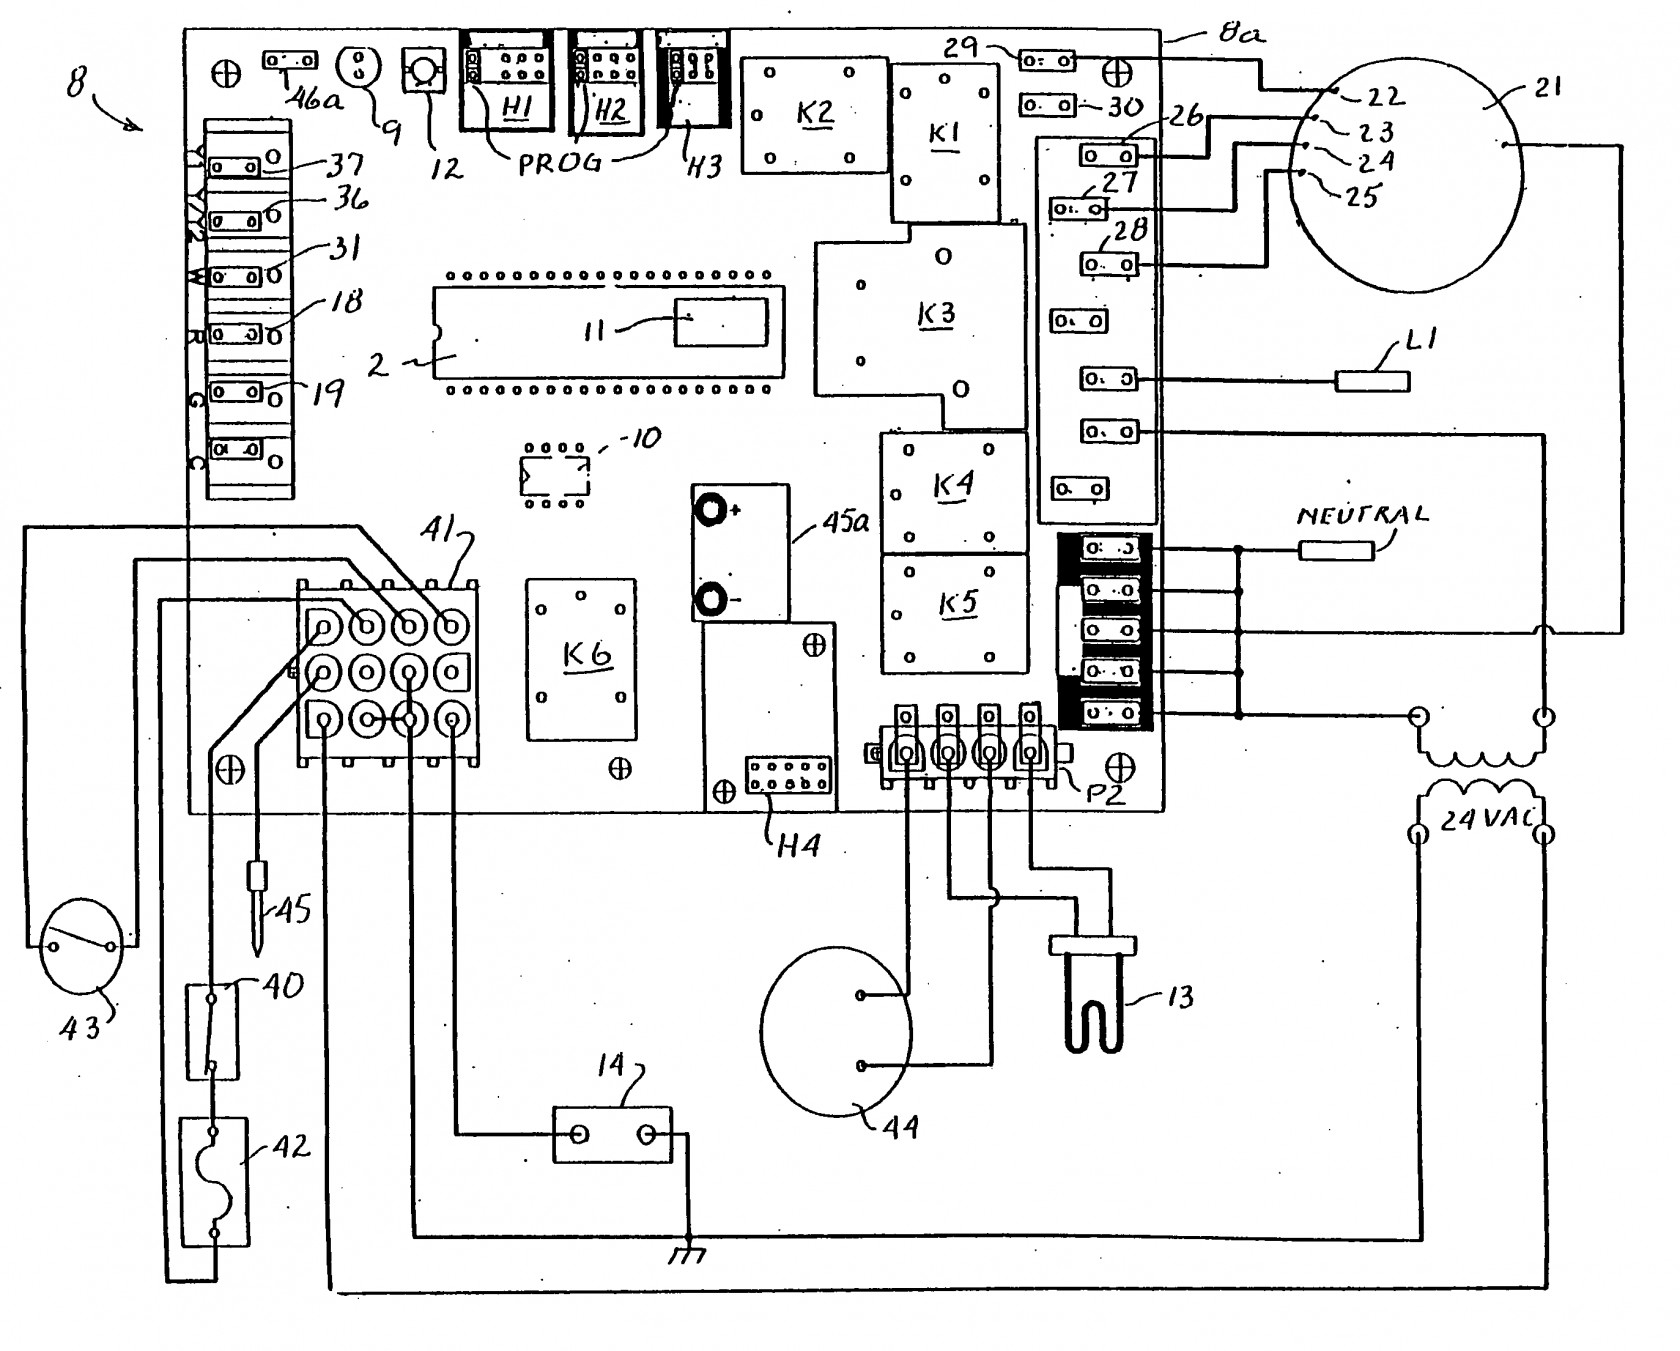 j 380 circuit board wiring diagram goodman furnace control    board       wiring       diagram    collection  goodman furnace control    board       wiring       diagram    collection